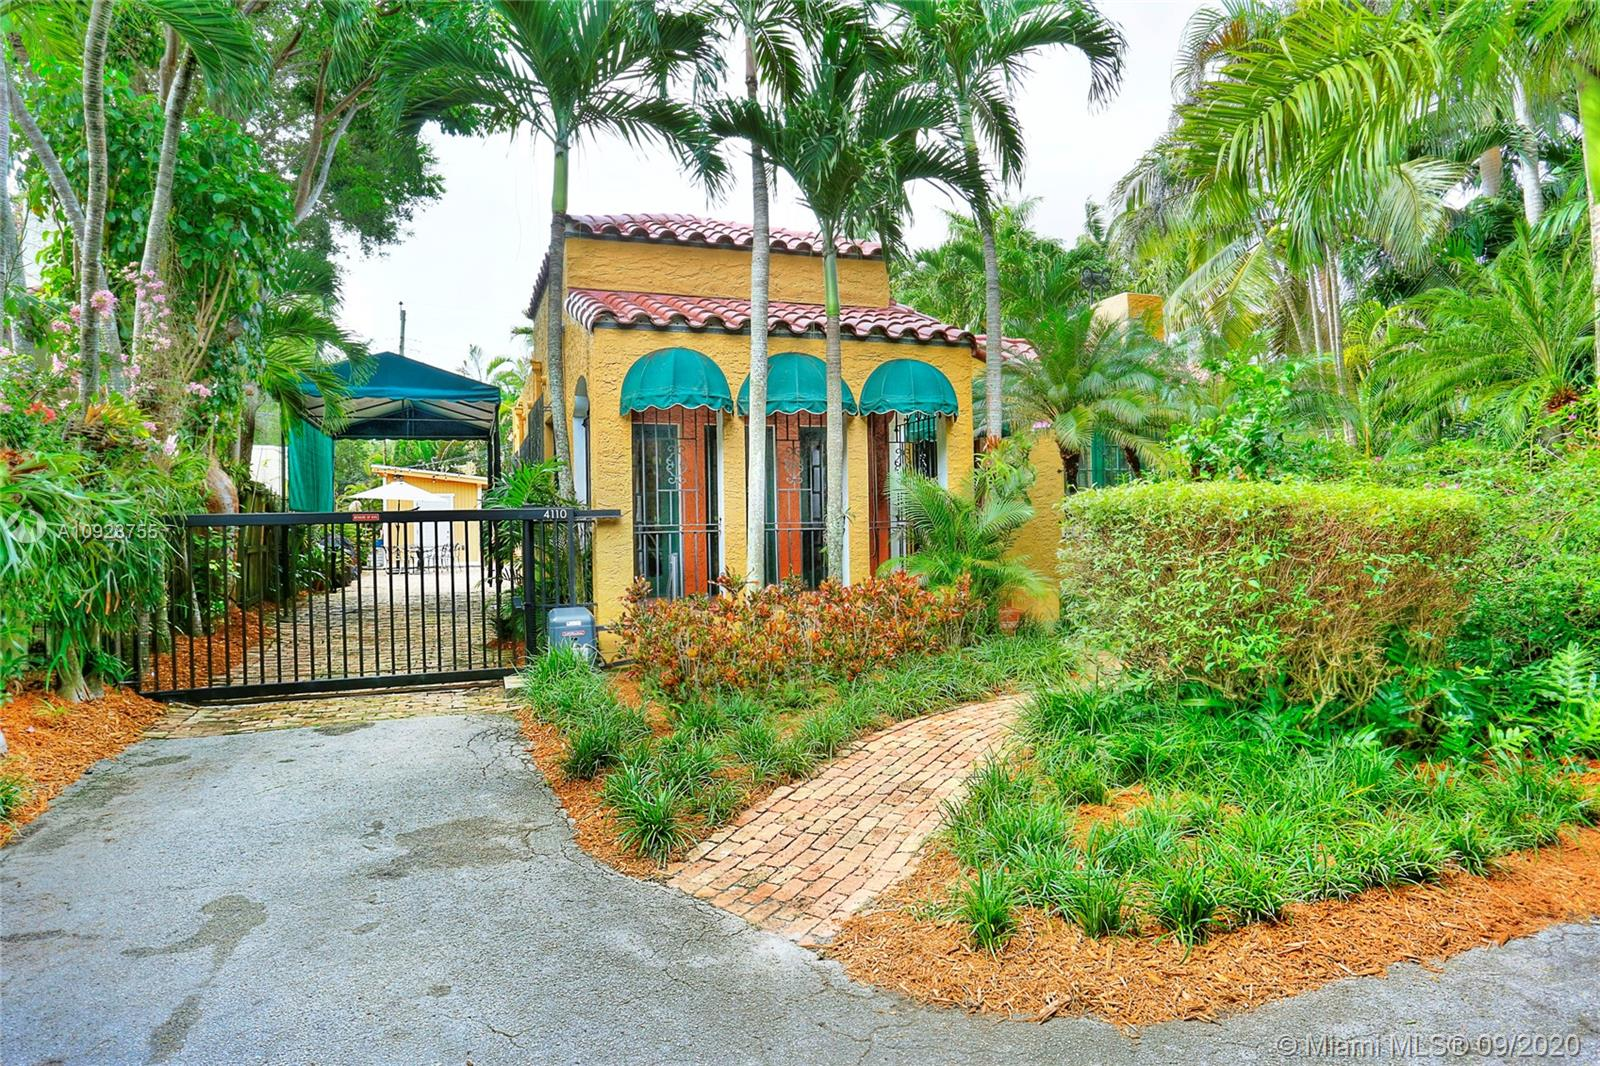 "Captivating bungalow tucked away on a quiet, tree-lined street in lush South Coconut Grove. Featured in the book ""The Tropical Cottage- At Home in Coconut Grove"". 2BR/1BA main house + 1BR/1BA guest house. Light-filled living spaces with original architectural details including gleaming wood flooring, original paned windows ( circa 1924), fireplace & volume ceilings. Living & dining rooms + large den/office that opens to an inviting screened porch. Renovated kitchen features classic white wood cabinetry & stainless appliances. Enjoy outdoor living & entertaining on the ultra-private expansive bricked terrace. Walk or bike to the Grove village center's galleries, boutiques, cafes & bayfront parks & marinas. Just minutes to Coral Gables, South Miami & Key Biscayne."